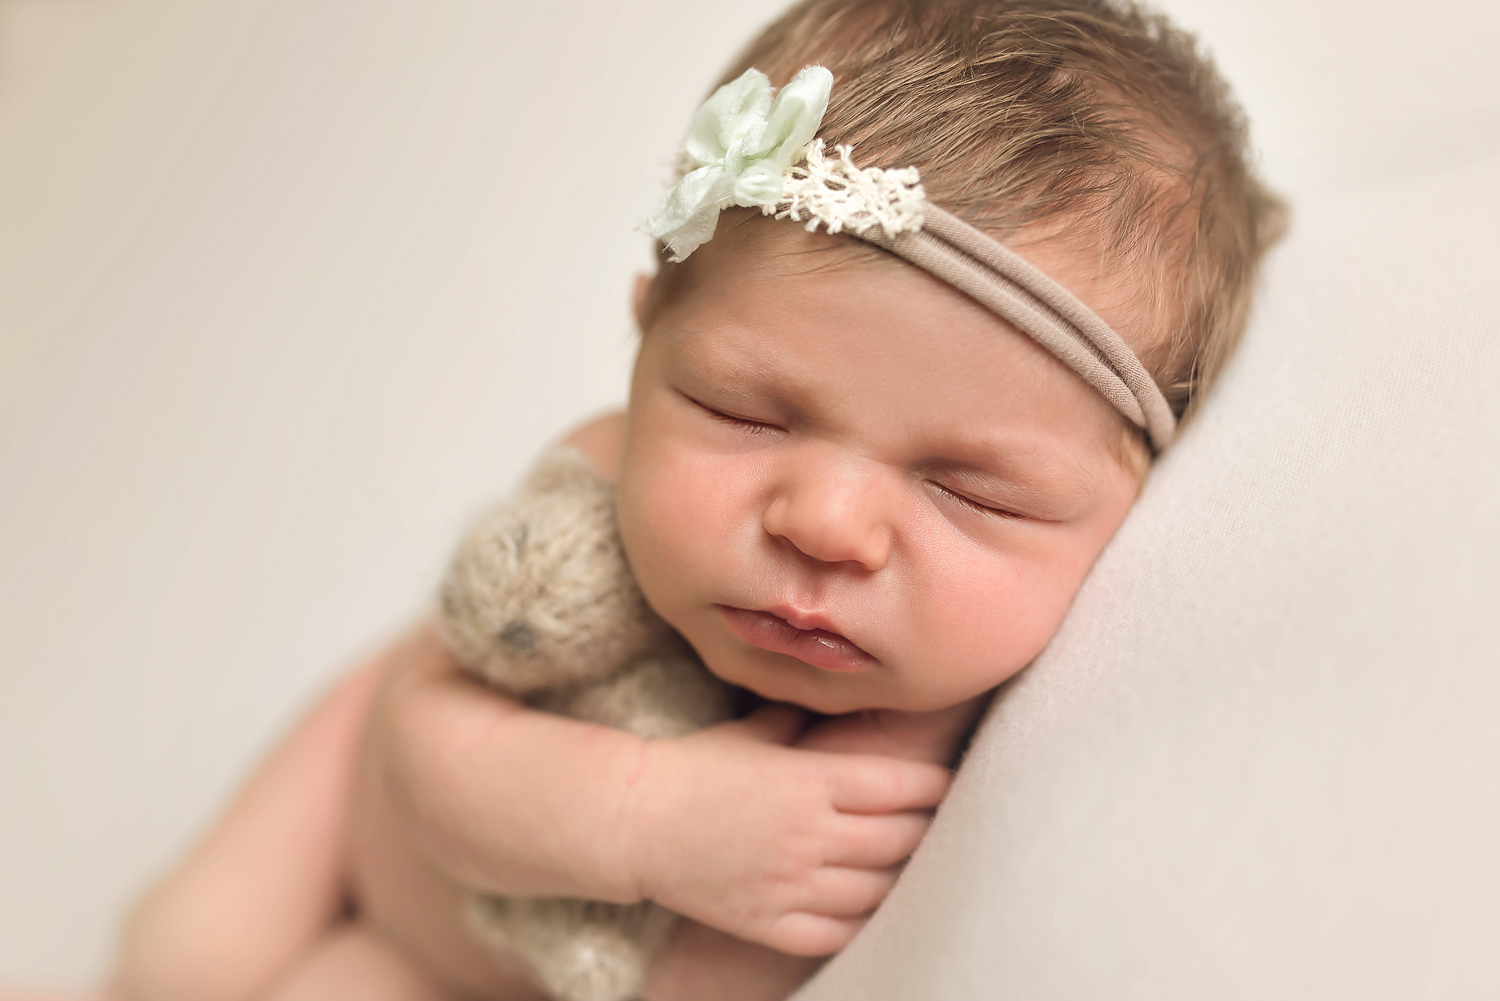 Jessica Fenfert Photography Baltimore Maryland Newborn Photographer Blog (11).jpg